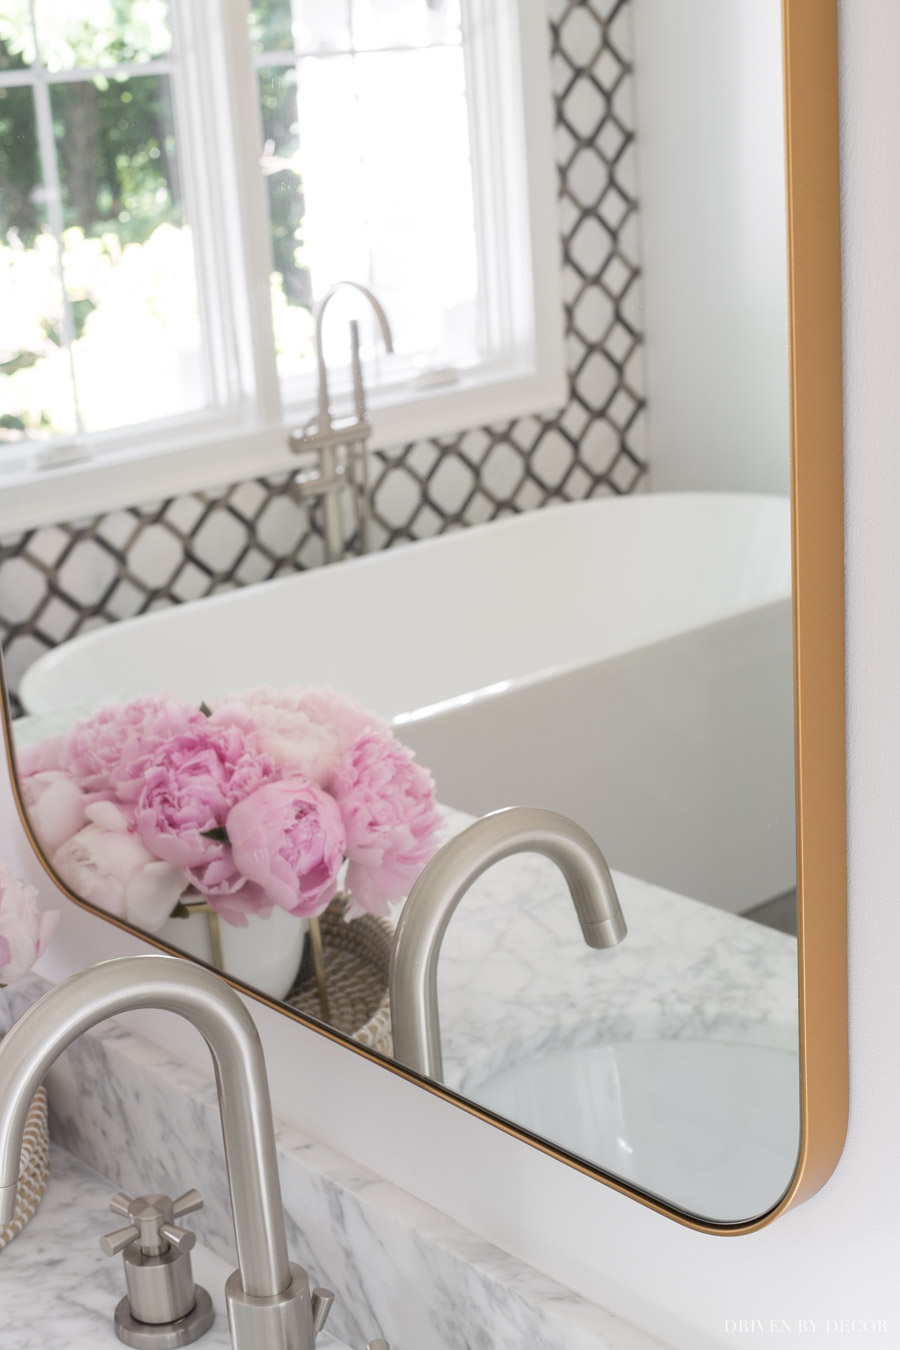 Love the design of this large bathroom mirror with a thin gold edge